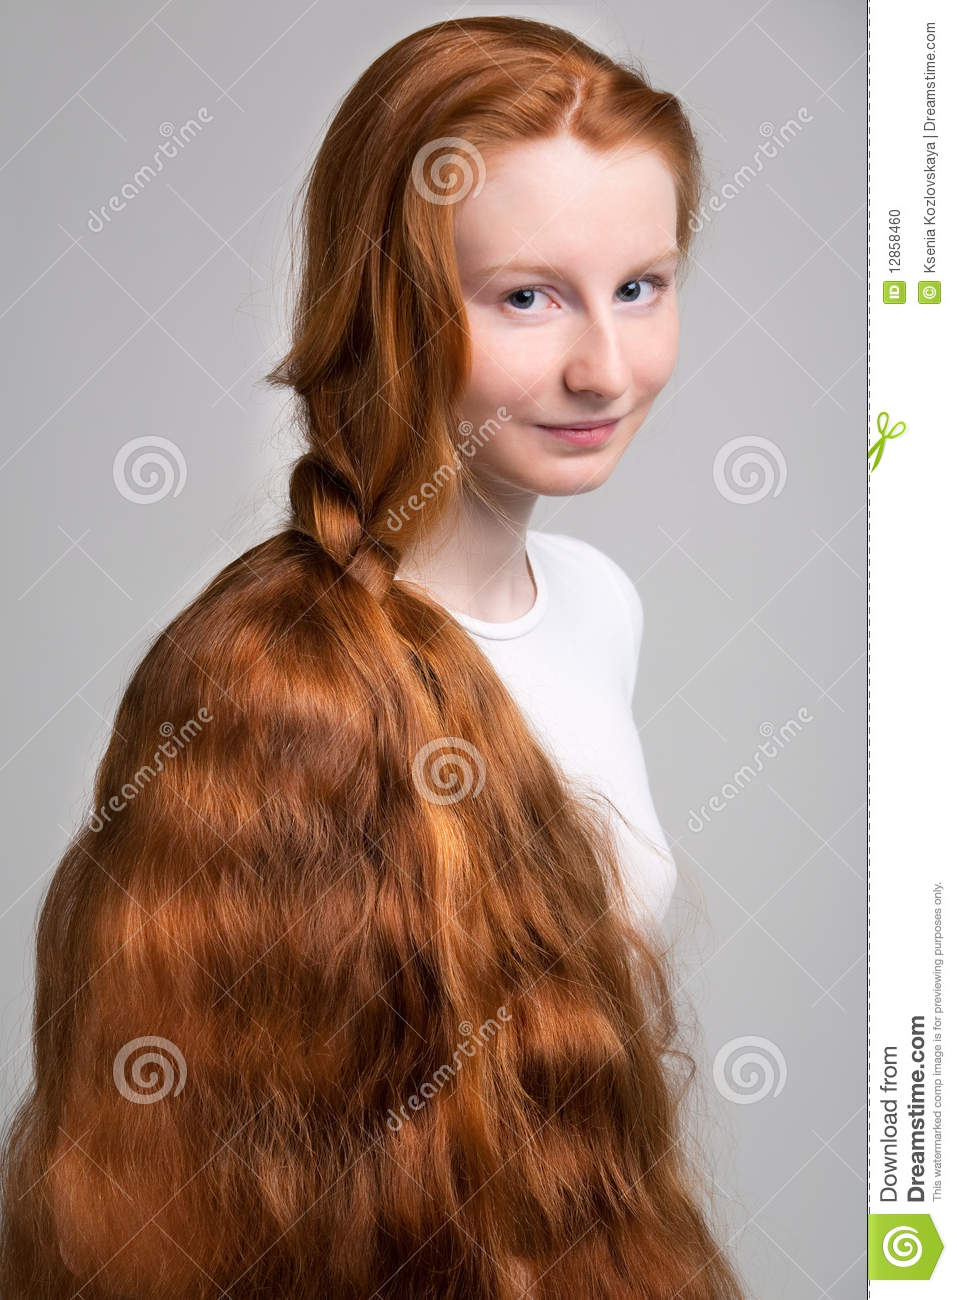 Pretty girl with wavy brown hair